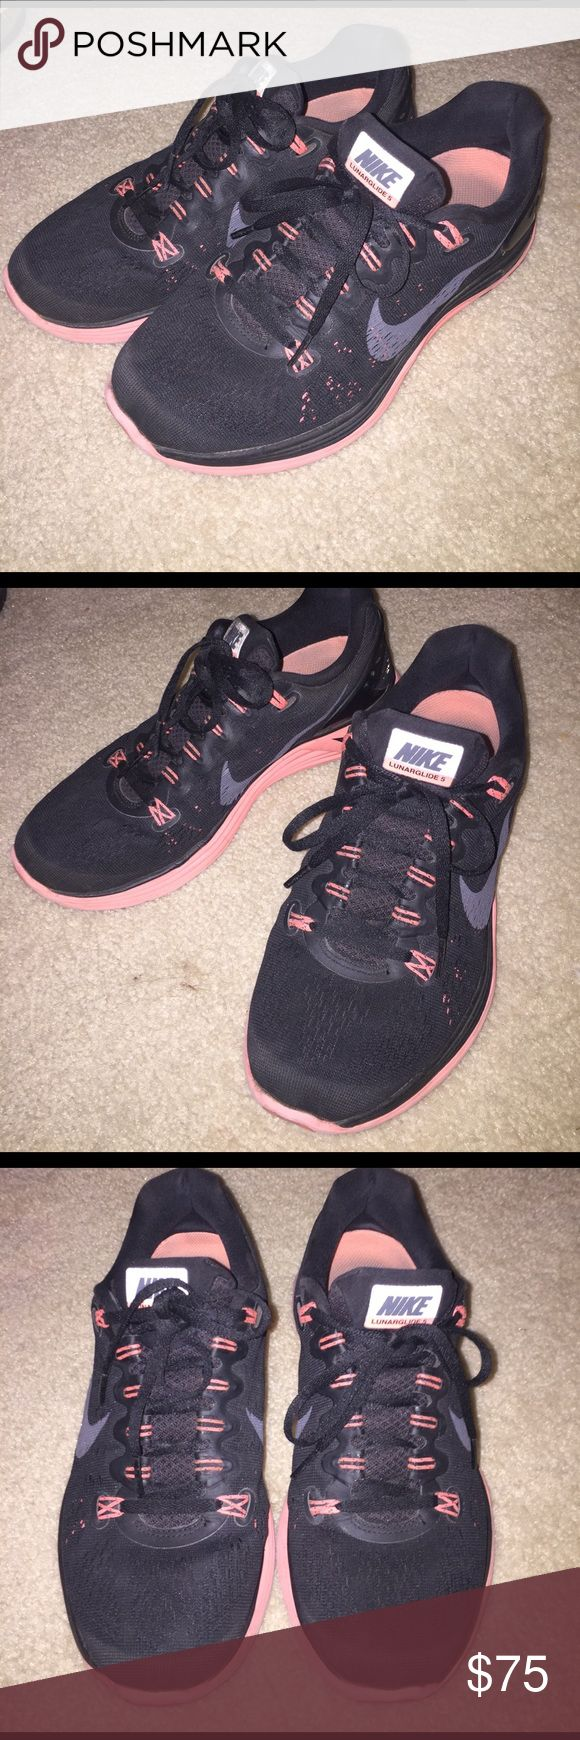 Black and Pink Nike Lunarglide 5 Sneakers Black and Pink Nike Lunarglide 5 Sneakers Nike Shoes Sneakers